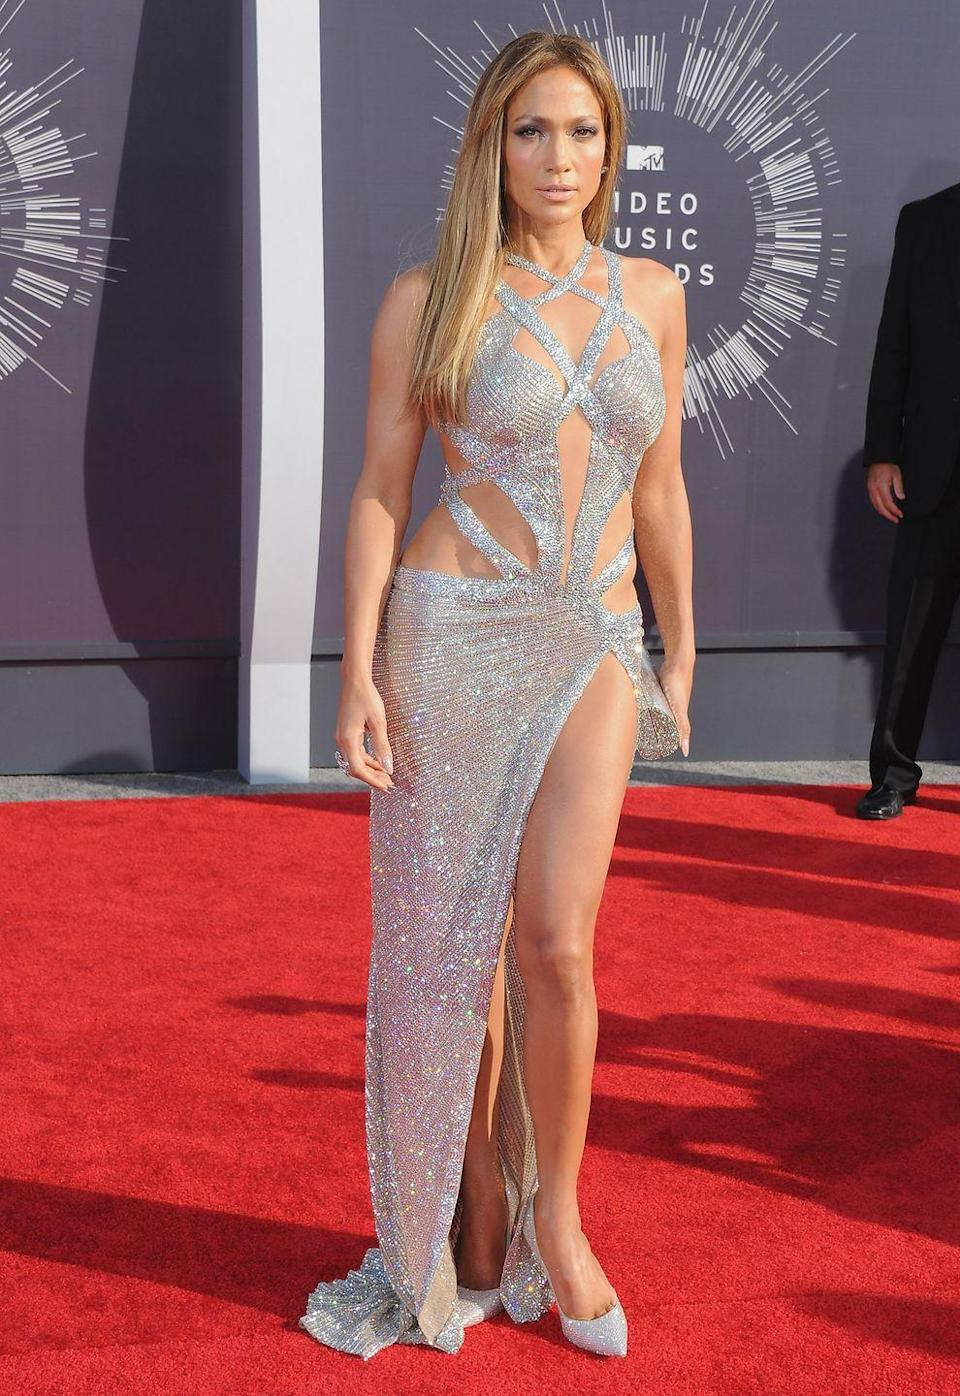 <p>Blinded, once again. J.Lo wears a bedazzled, strappy Charbel Zoe dress at the MTV Video Music Awards, which she pairs with equally glittery heels and clutch.</p>